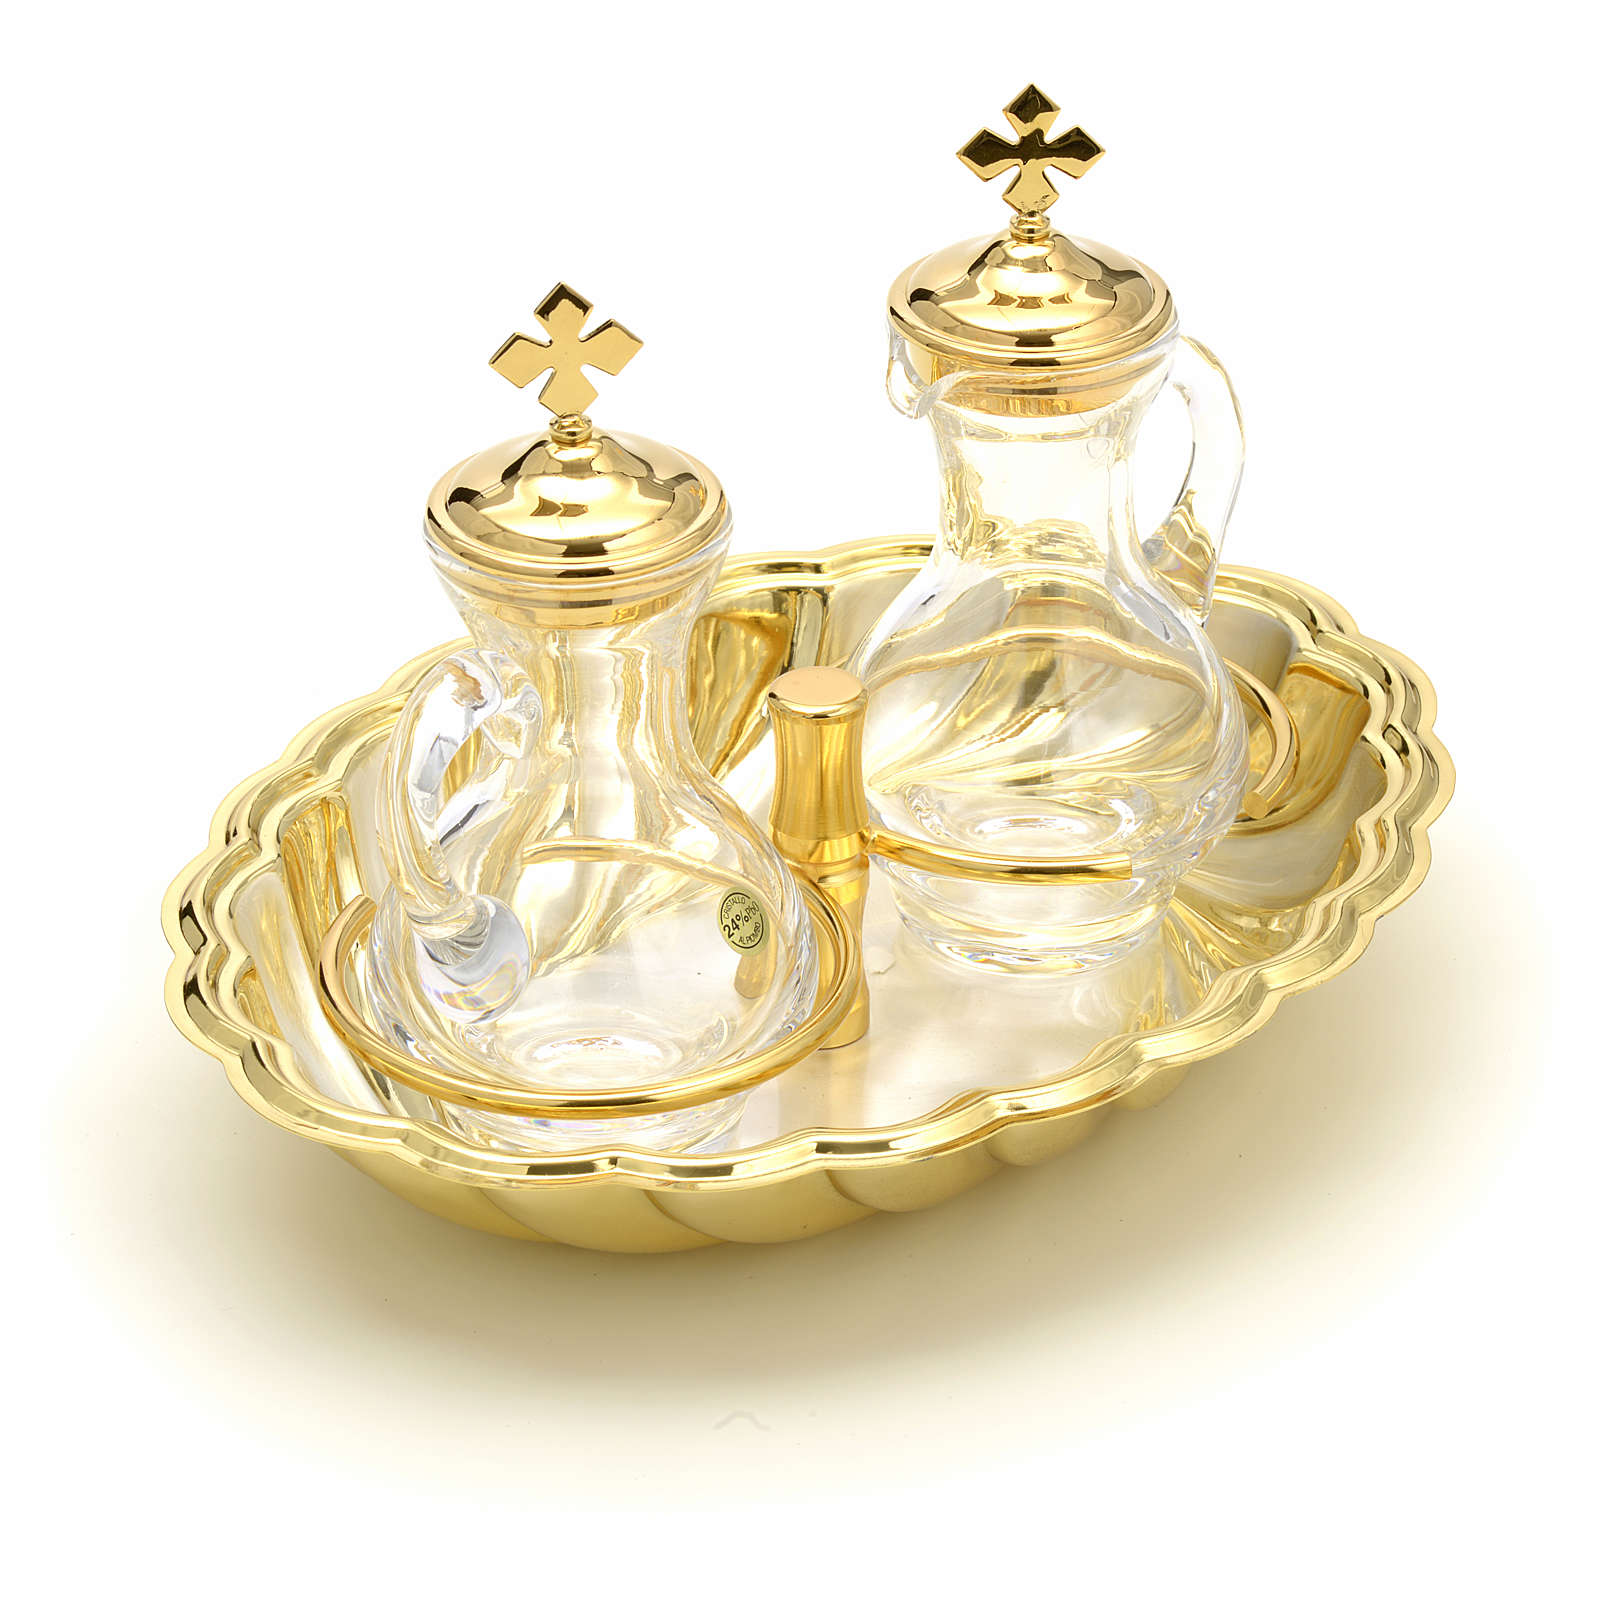 Glass cruet set with silver and gold-plated brass tray 4